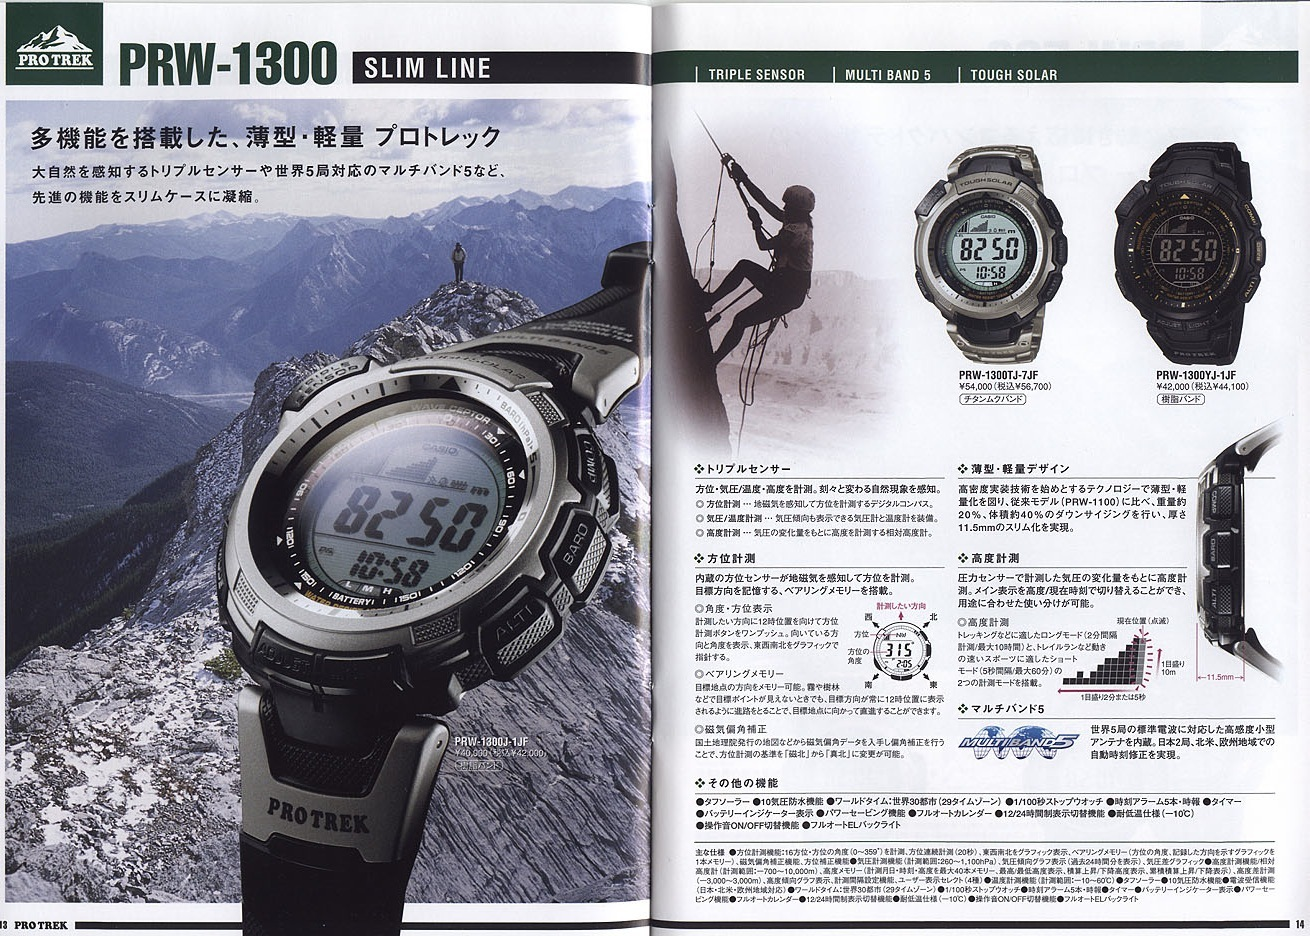 Casio-Pro-Trek-Collection-Summer-2009-Page-8.jpg